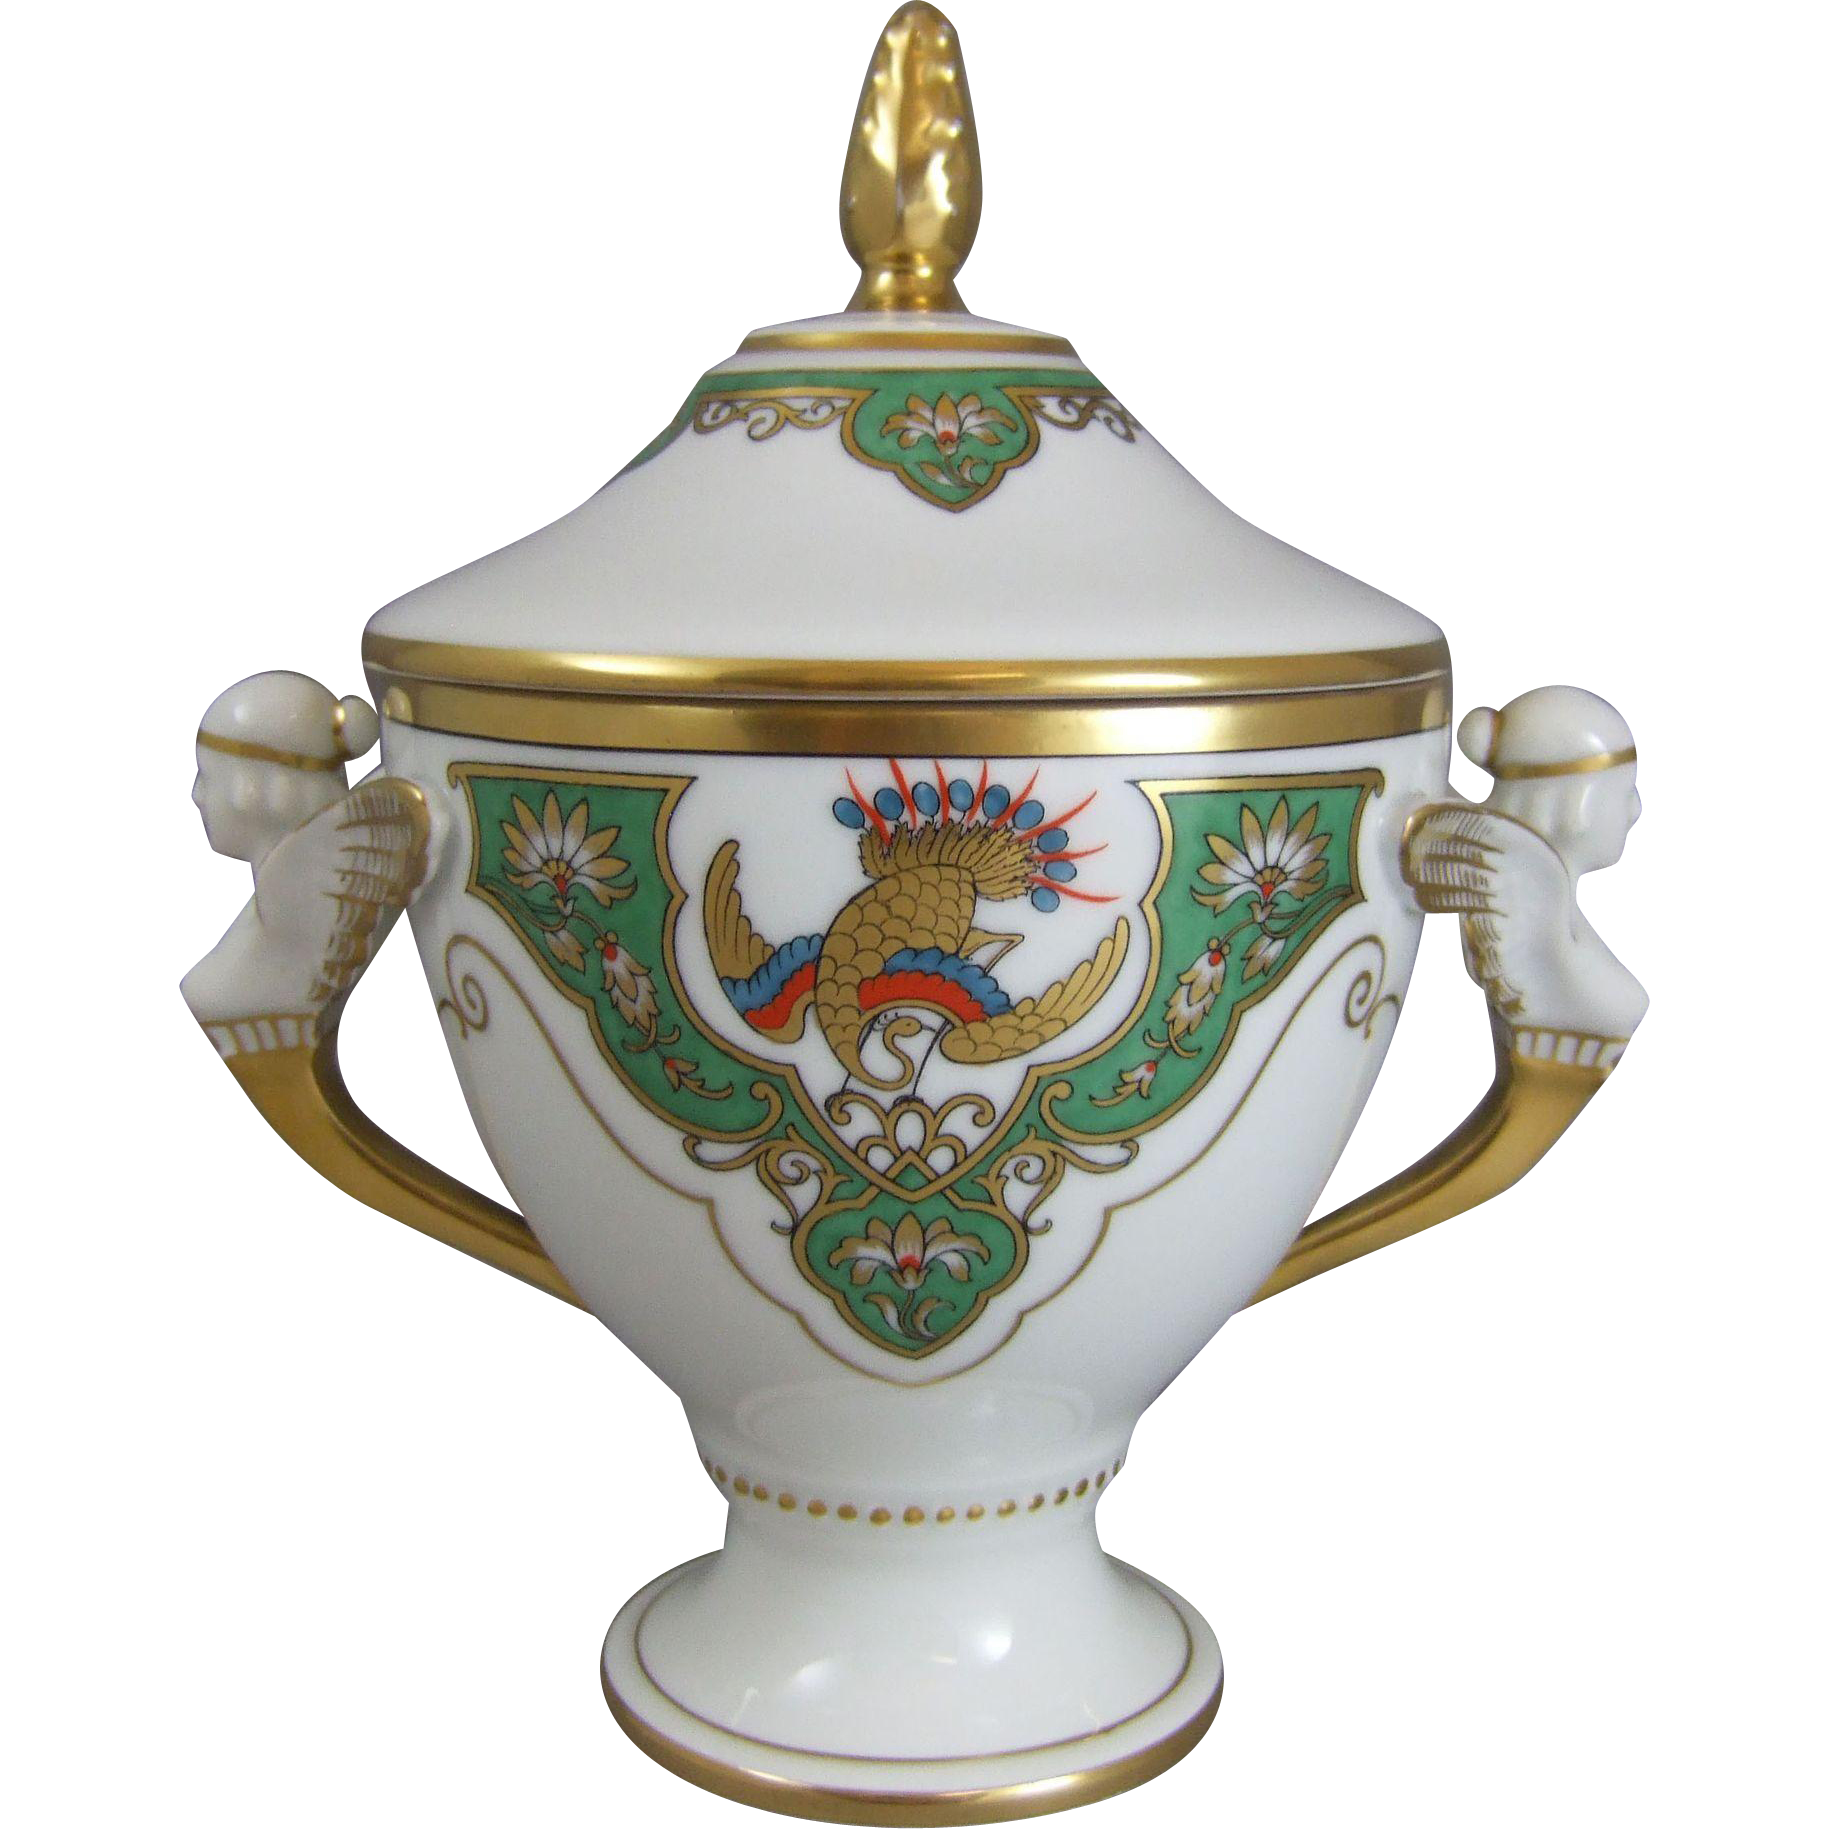 Furstenberg Porcelain Compote with Peacock & Caryatid